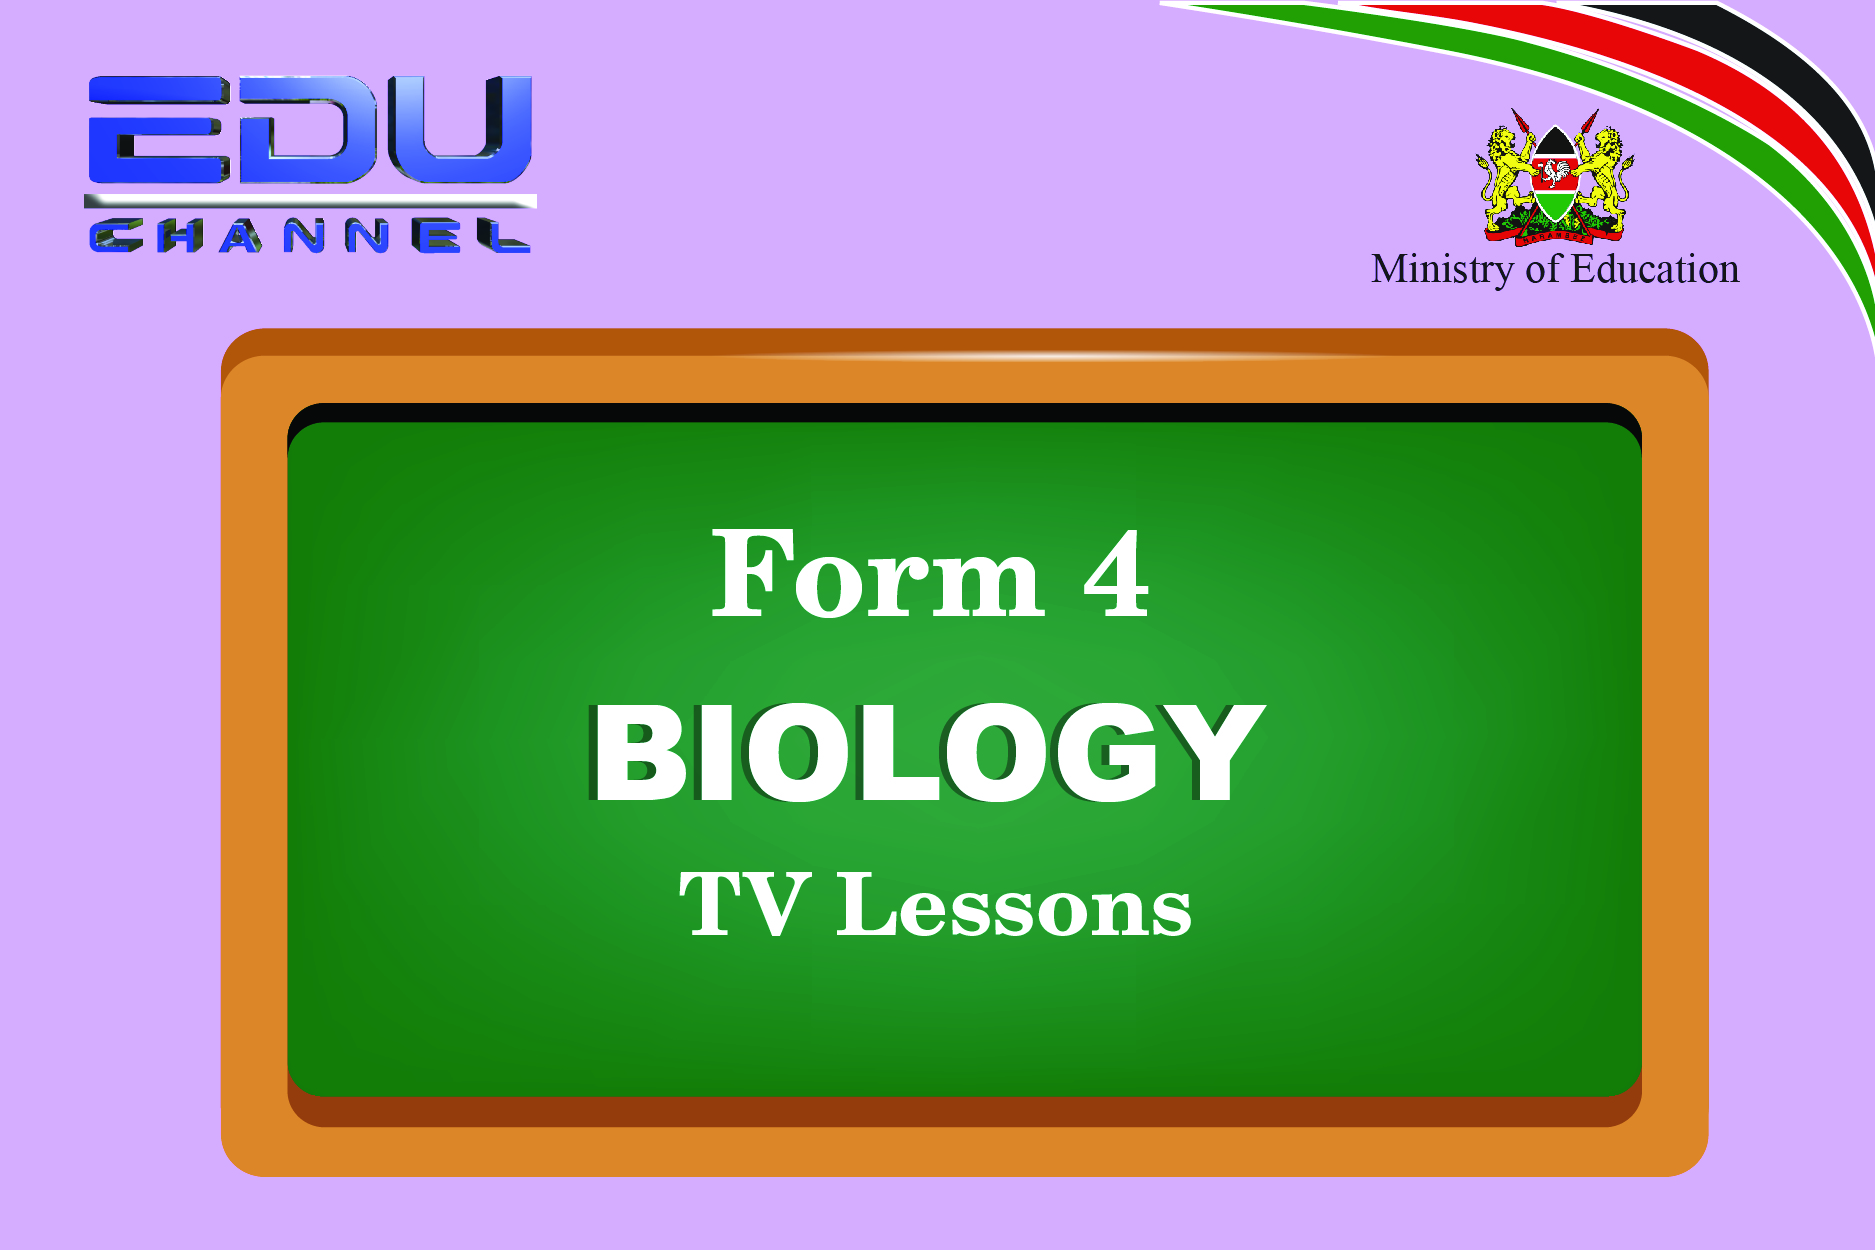 Form 4 Biology Lesson 10: Reception response and Coordination of Organisms - Common eye defects